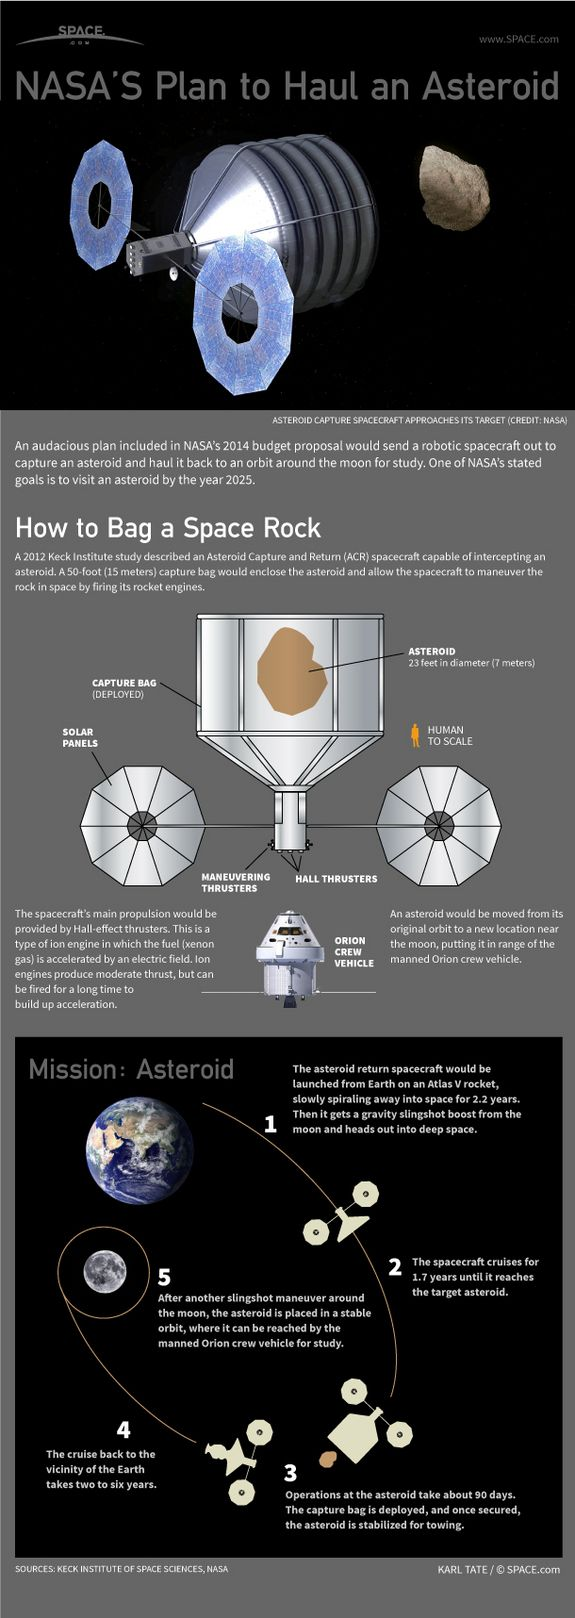 25+ best ideas about Nasa missions on Pinterest | Space ...